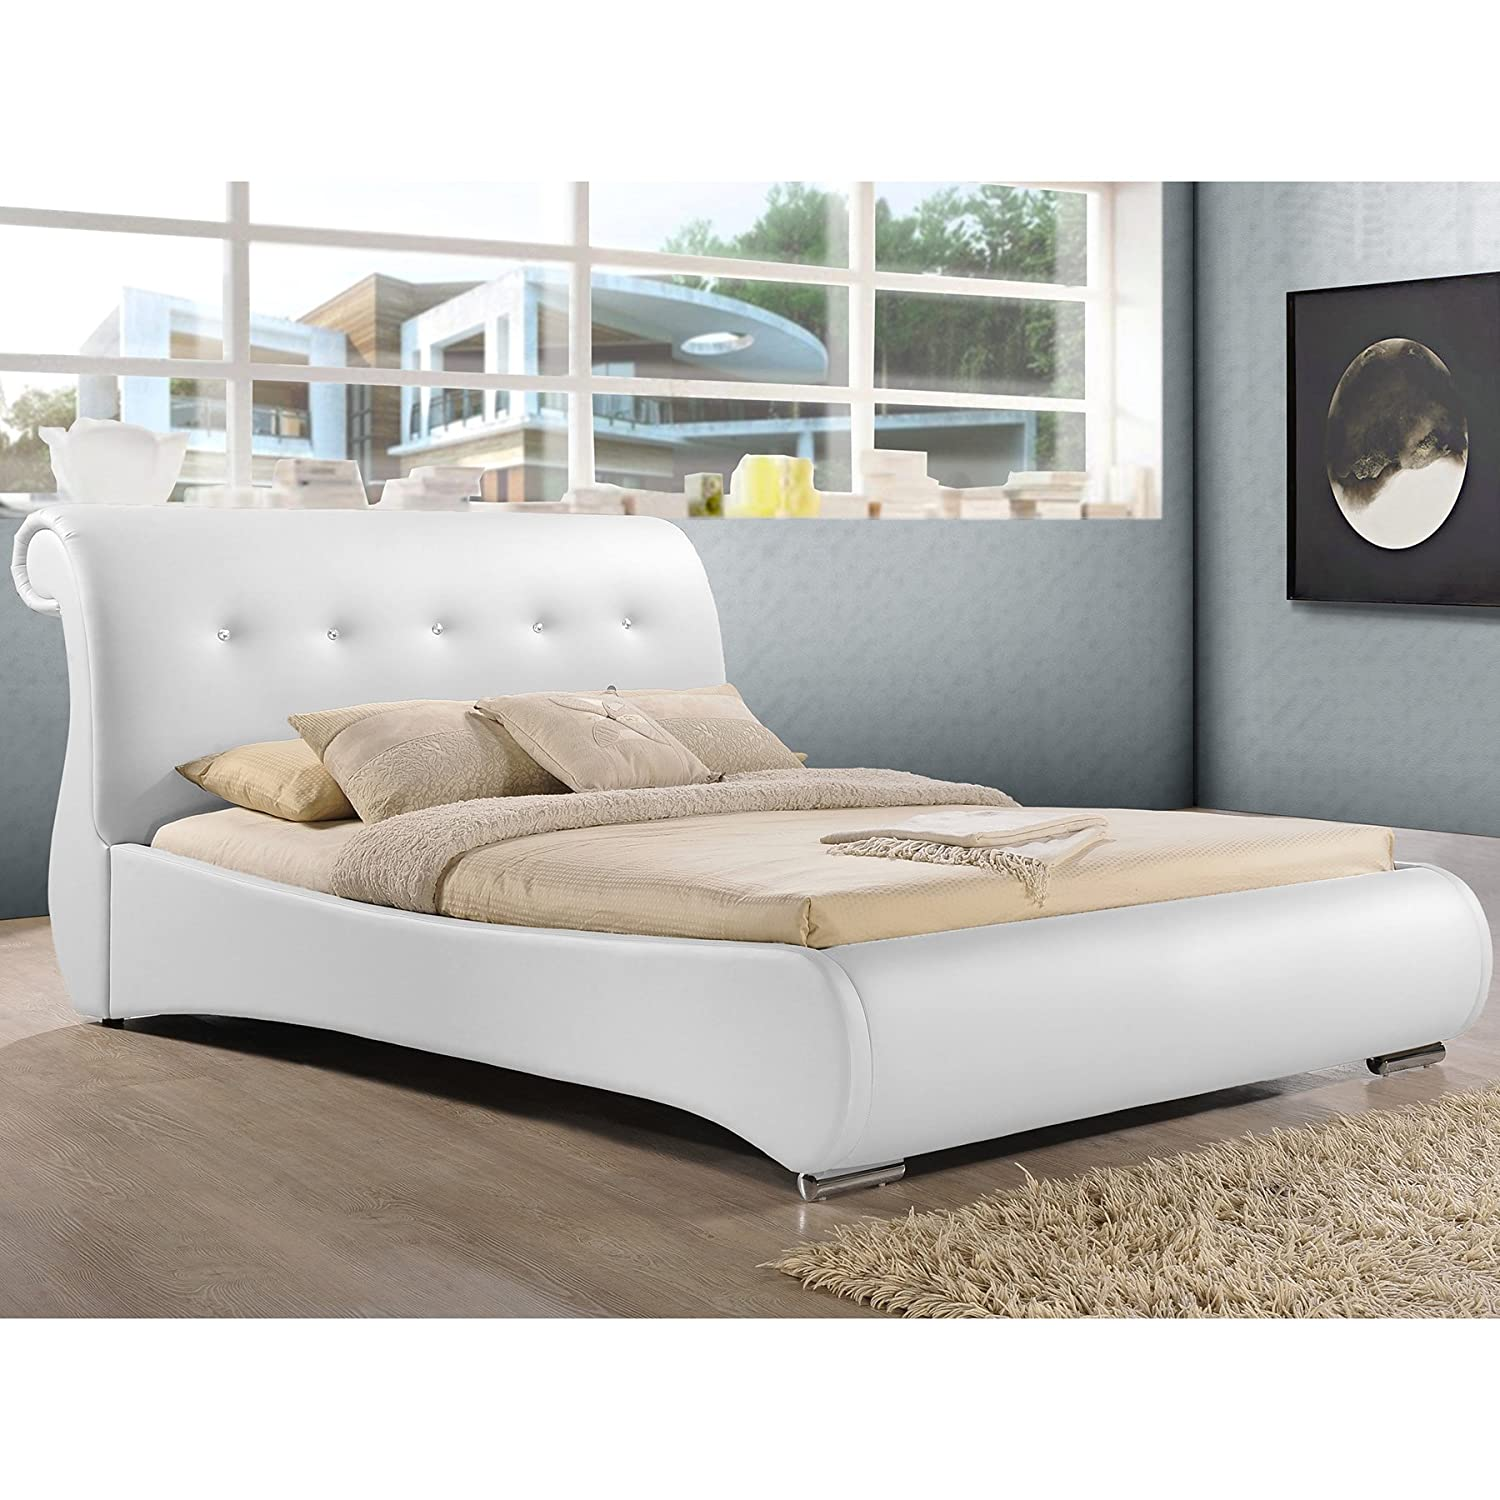 amazoncom baxton studio pergamena leather contemporary bed queen whitekitchen  dining. amazoncom baxton studio pergamena leather contemporary bed